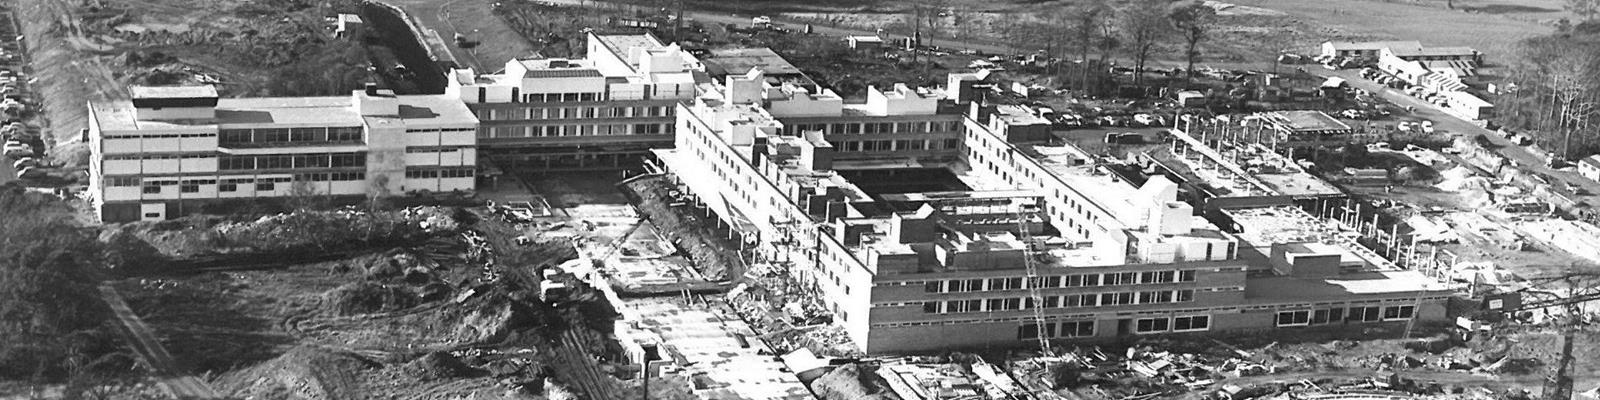 A black and white photograph of Lancaster University under construction